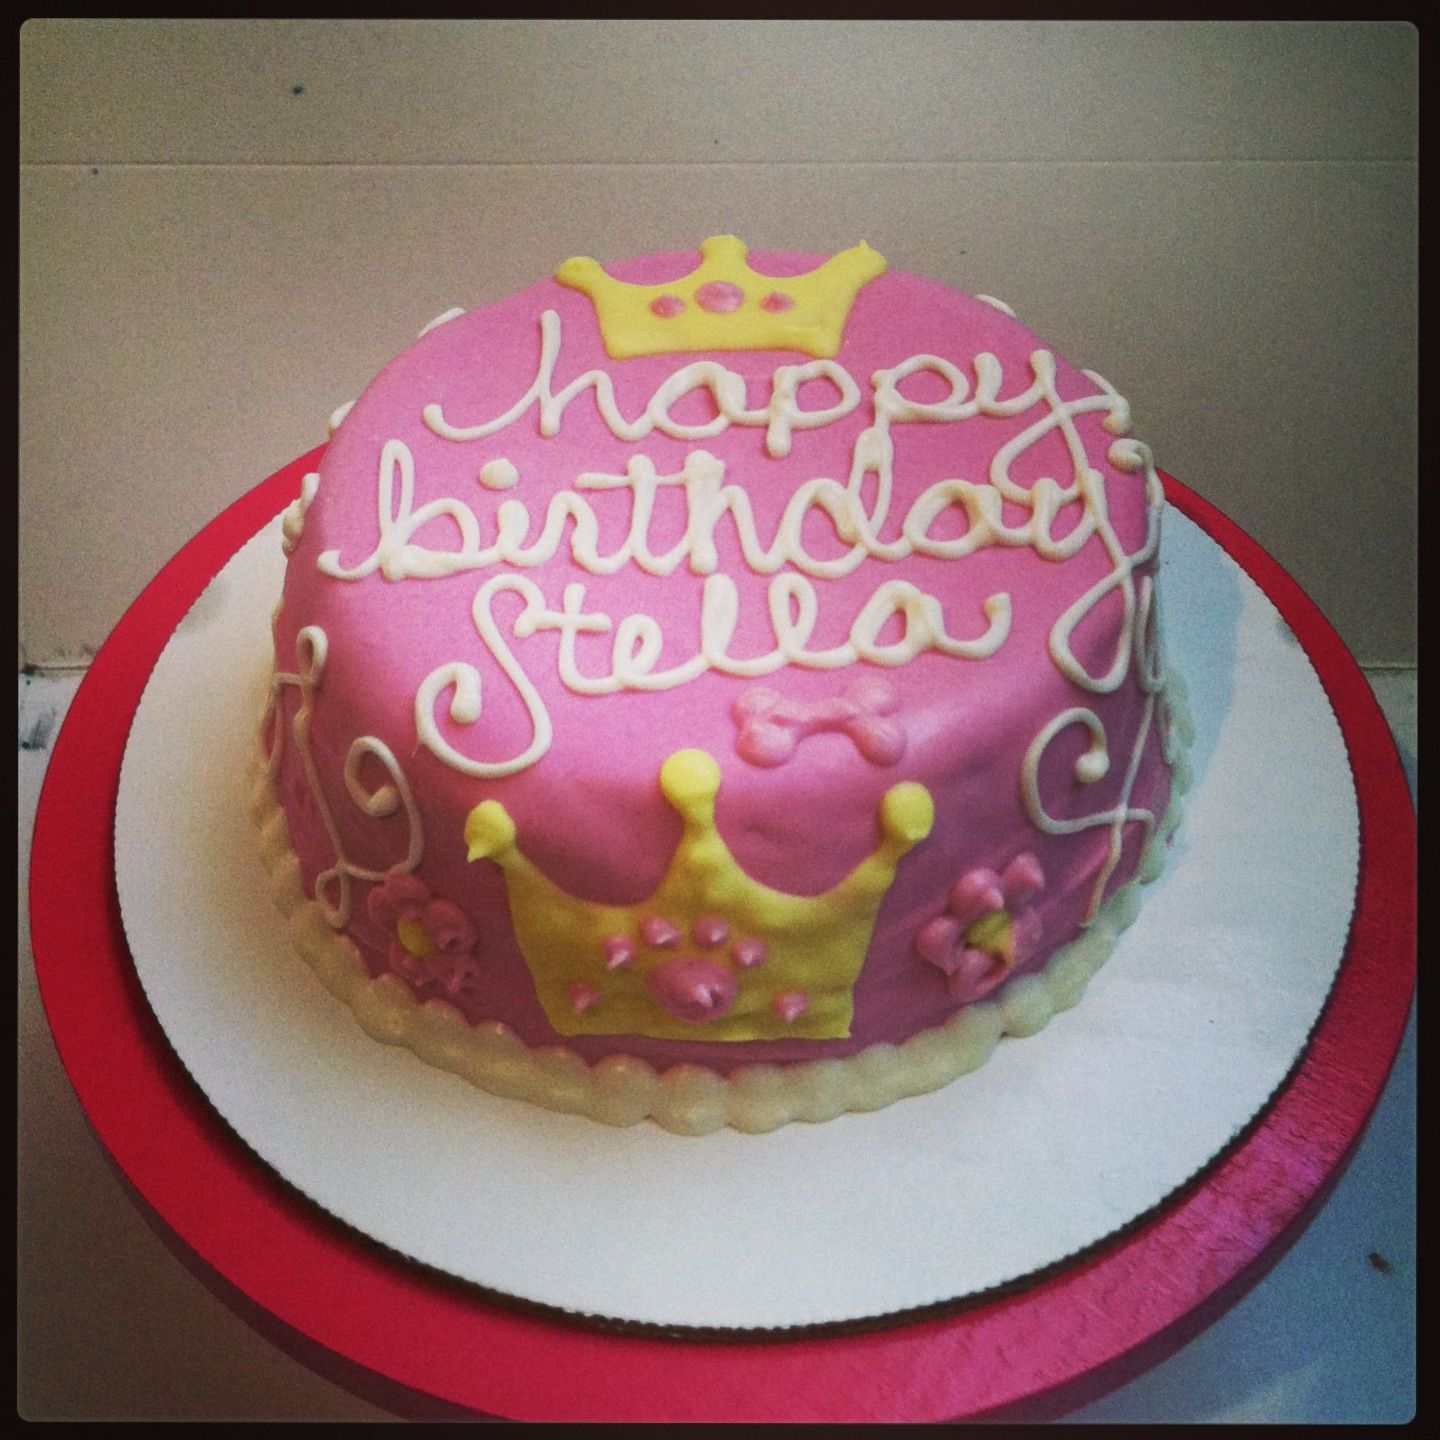 A Sweet Princess Dog Cake We Made For Stella In NYC